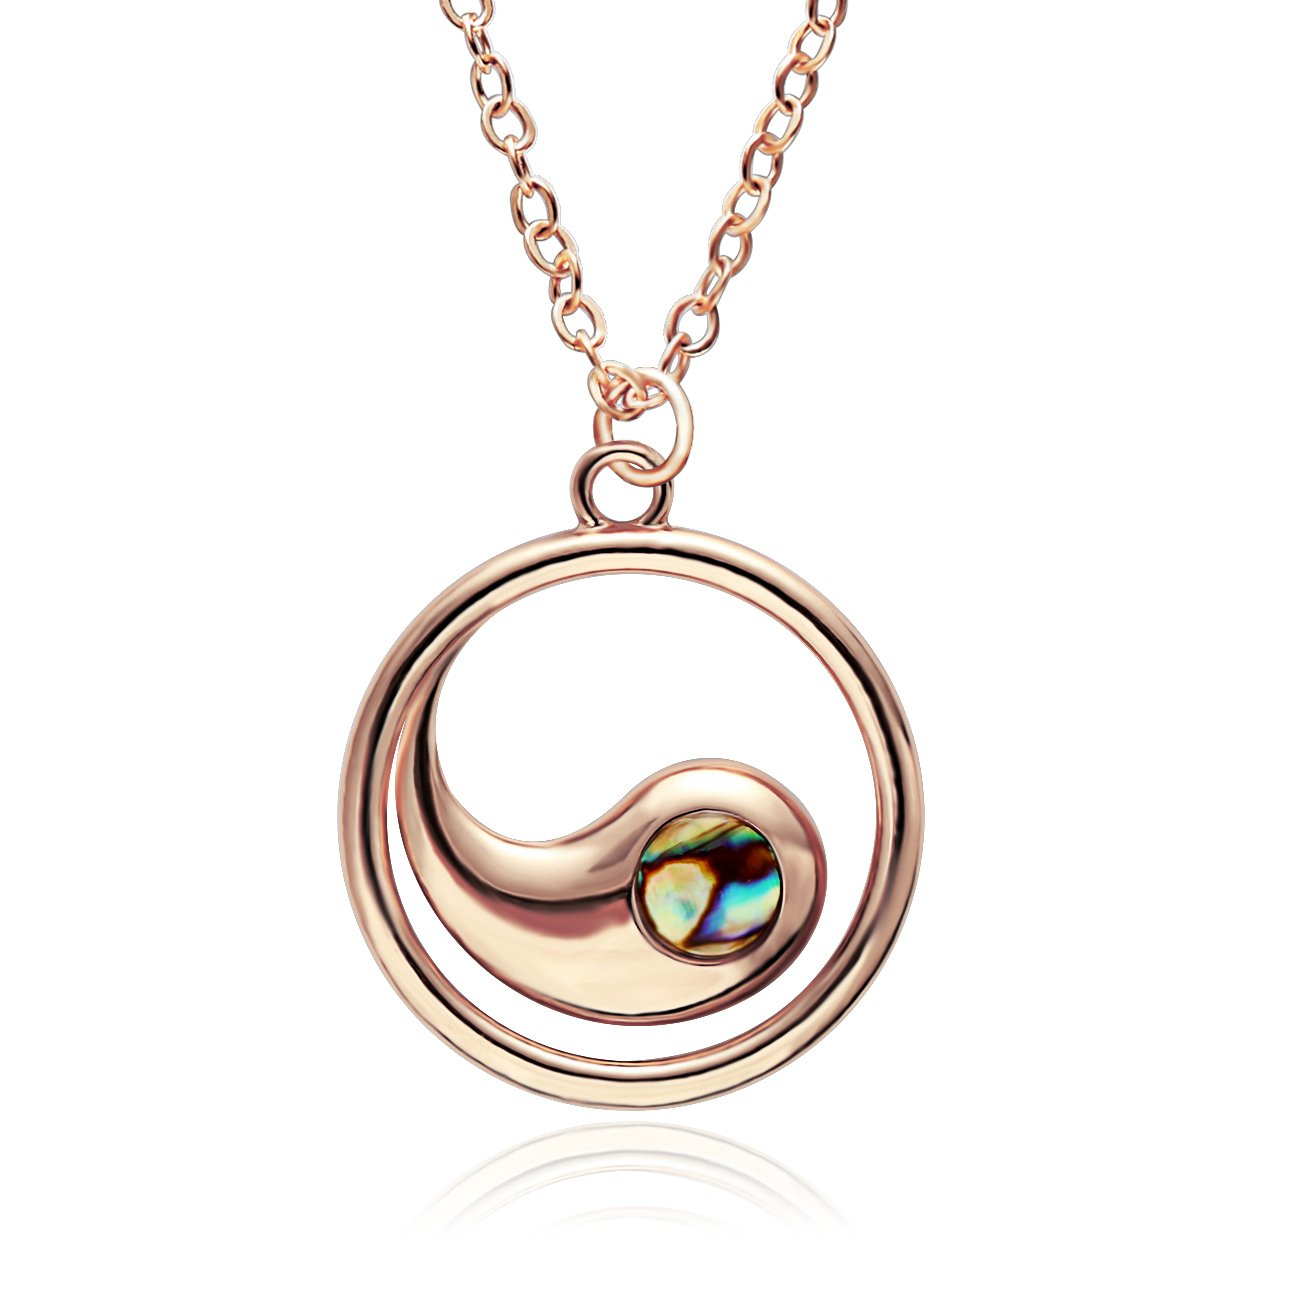 NOUMANDA Abalone Shell Tadpole Pendant Necklace for Women Rose Gold